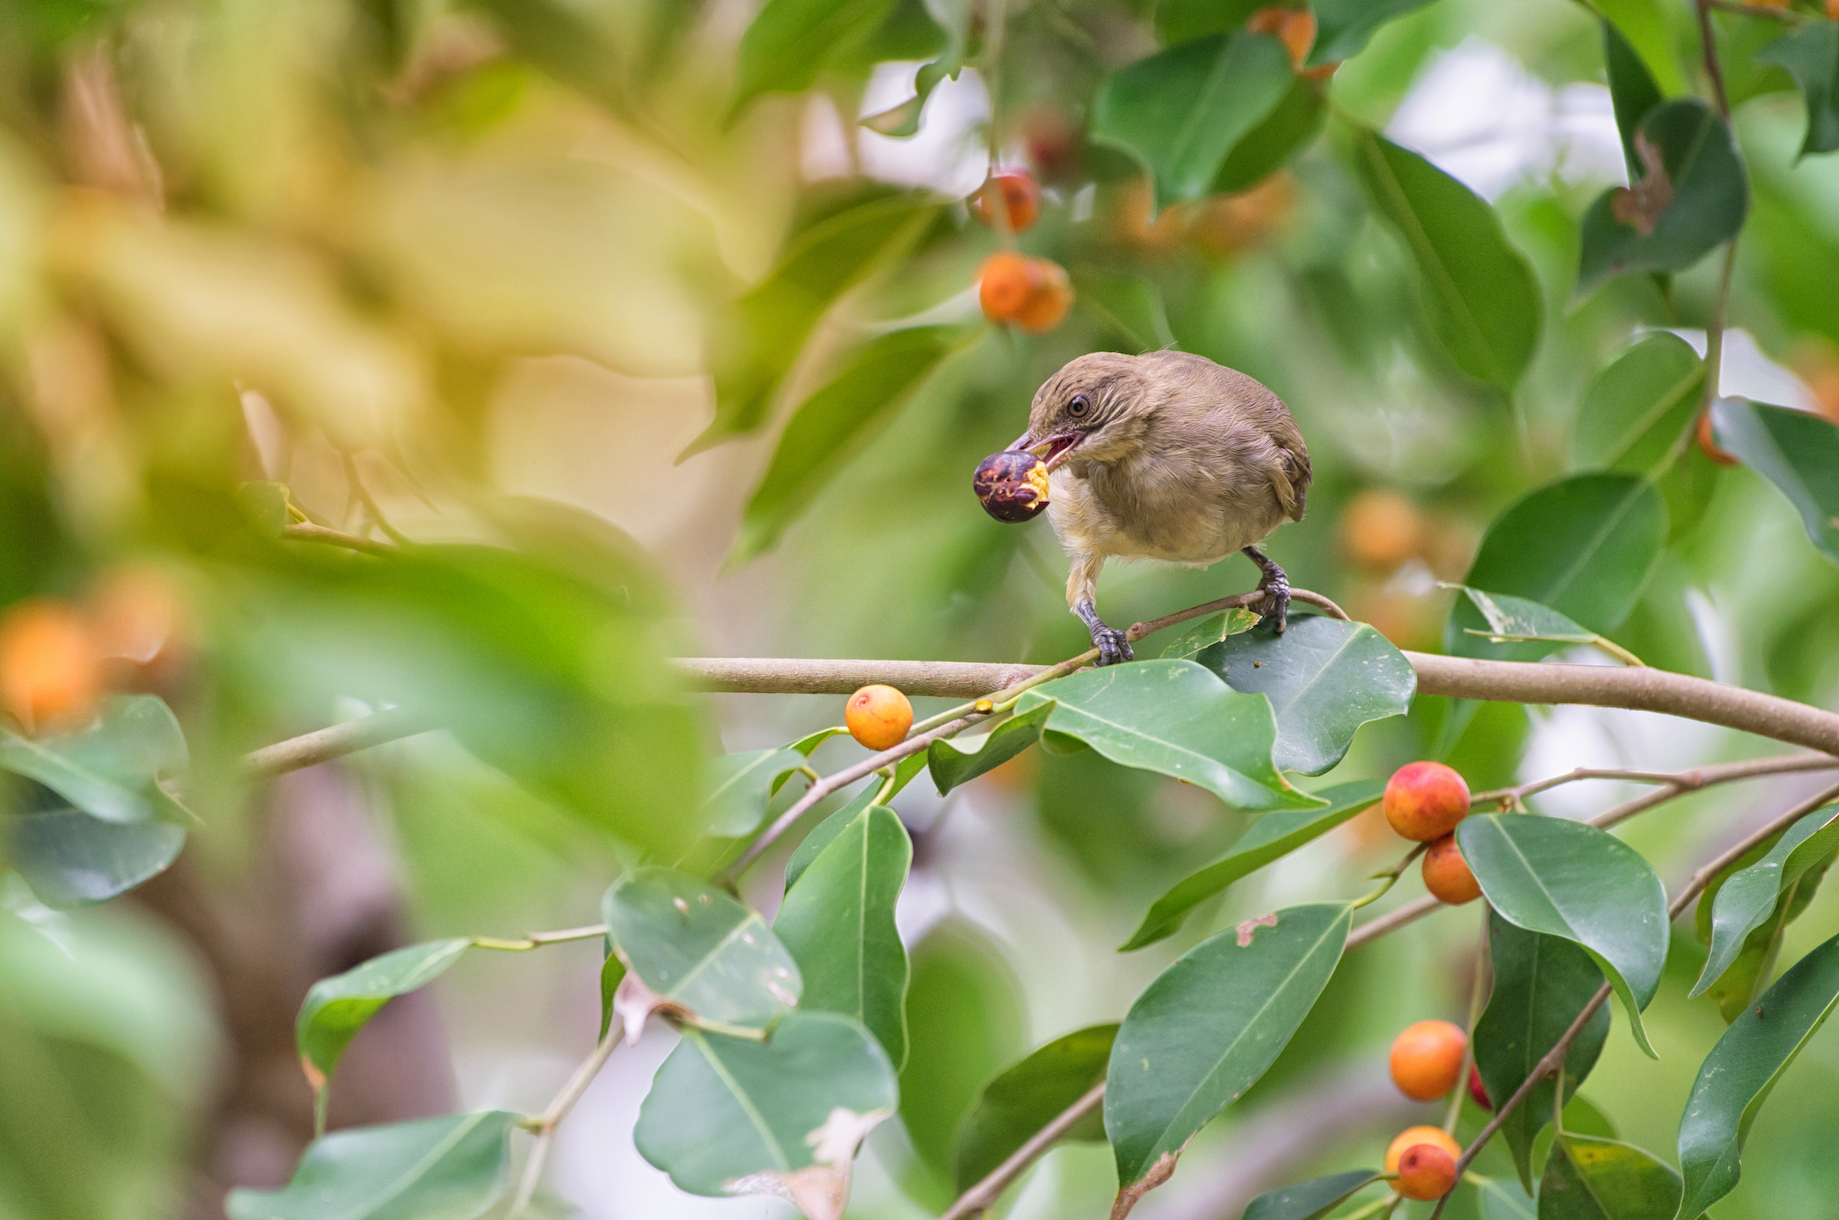 A new study has found that some birds adapt to habitat degradation from grazing by changing their diets and eating different available seeds.